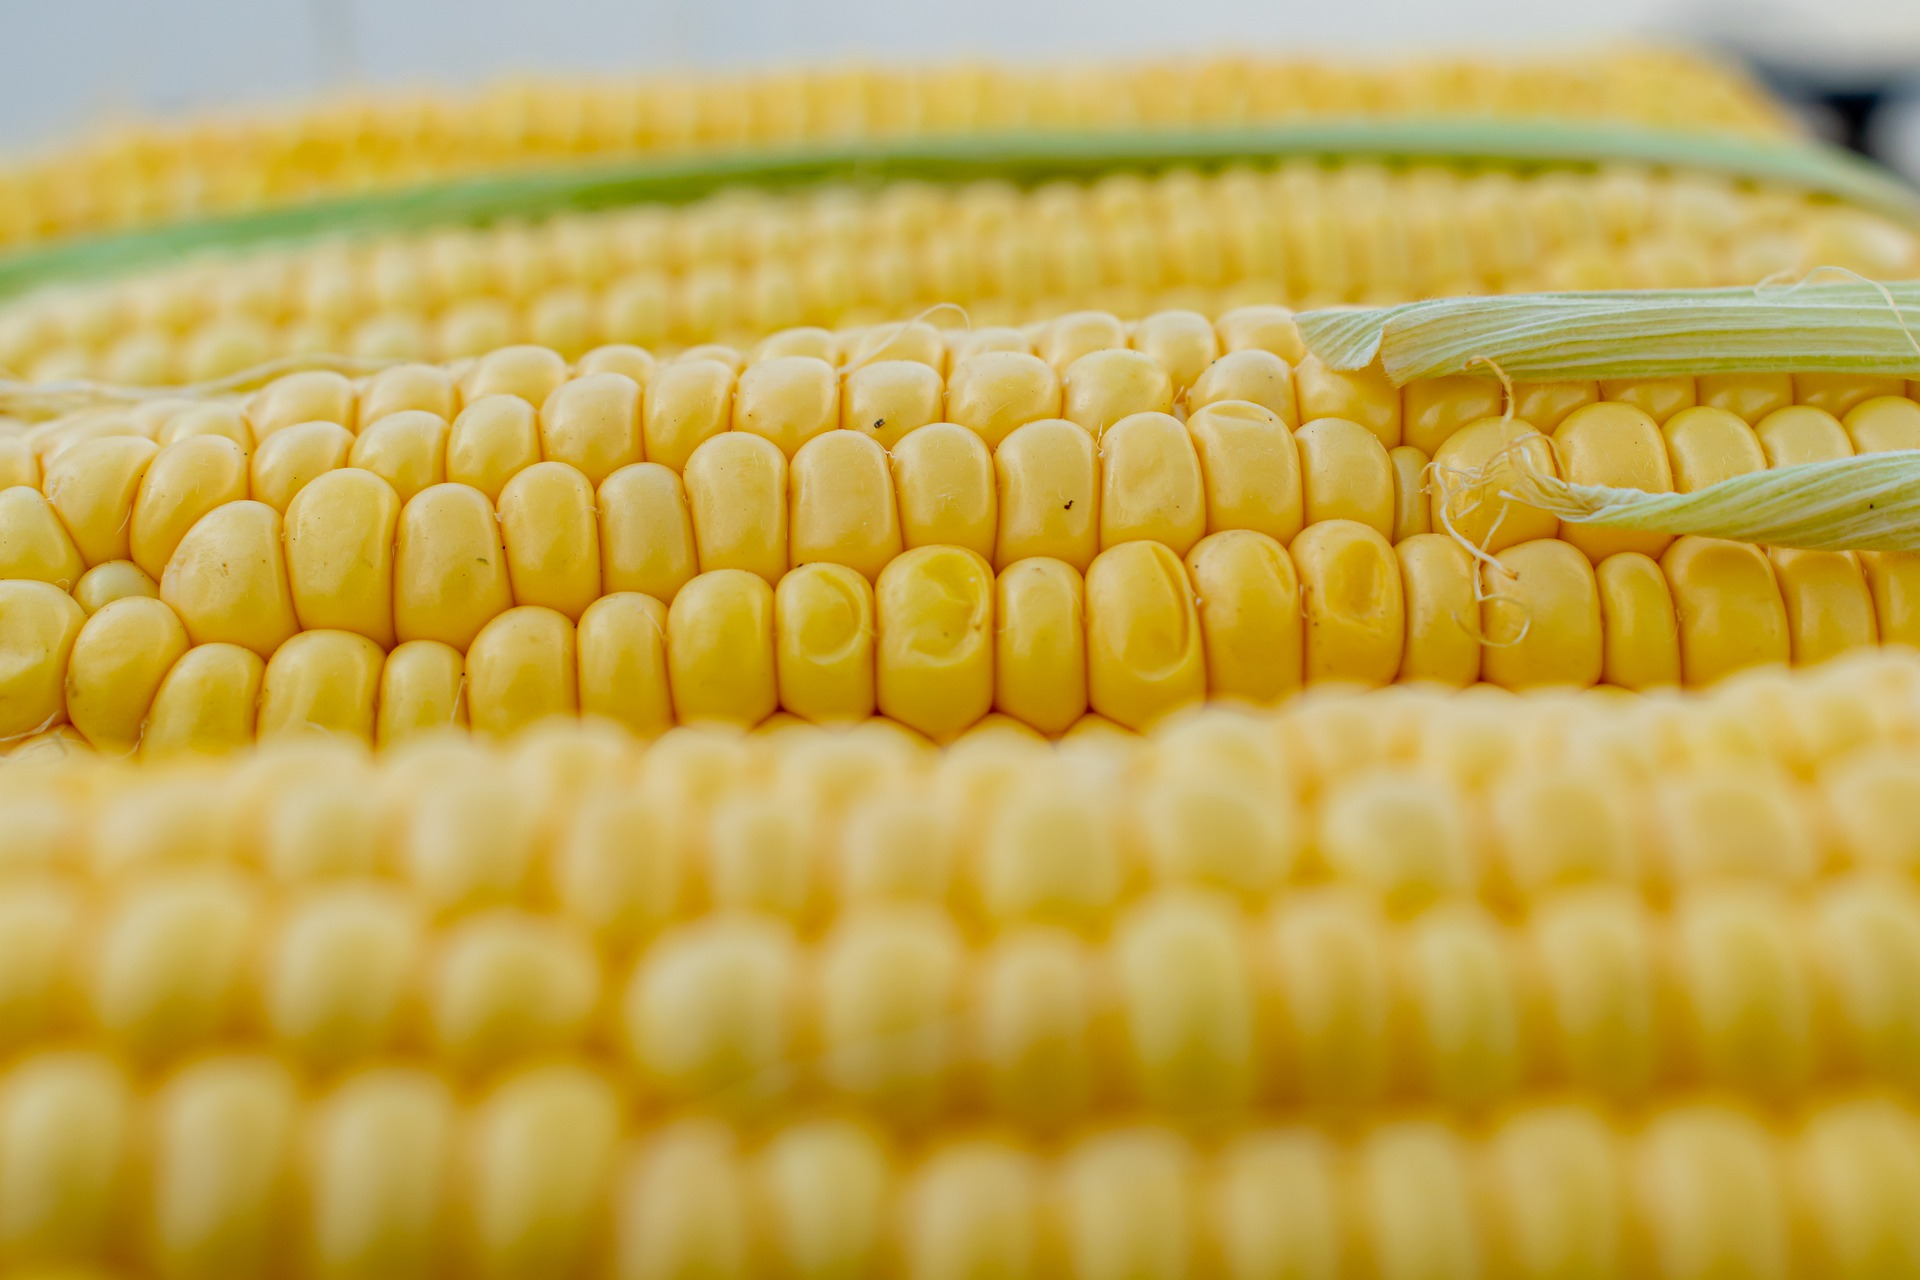 Three ears of shucked corn laying on a flat surface